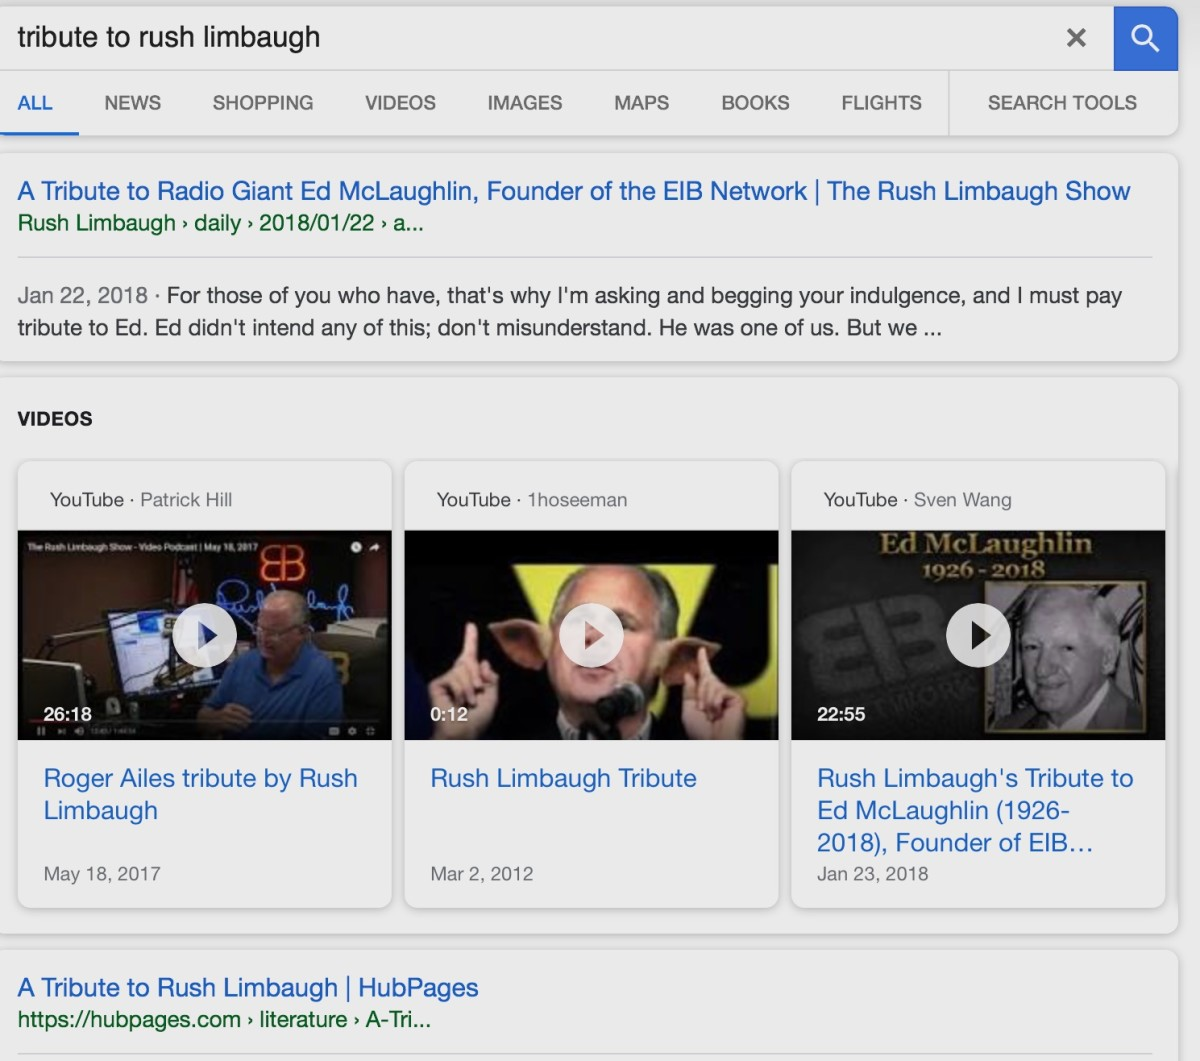 a-tribute-to-rush-limbaugh